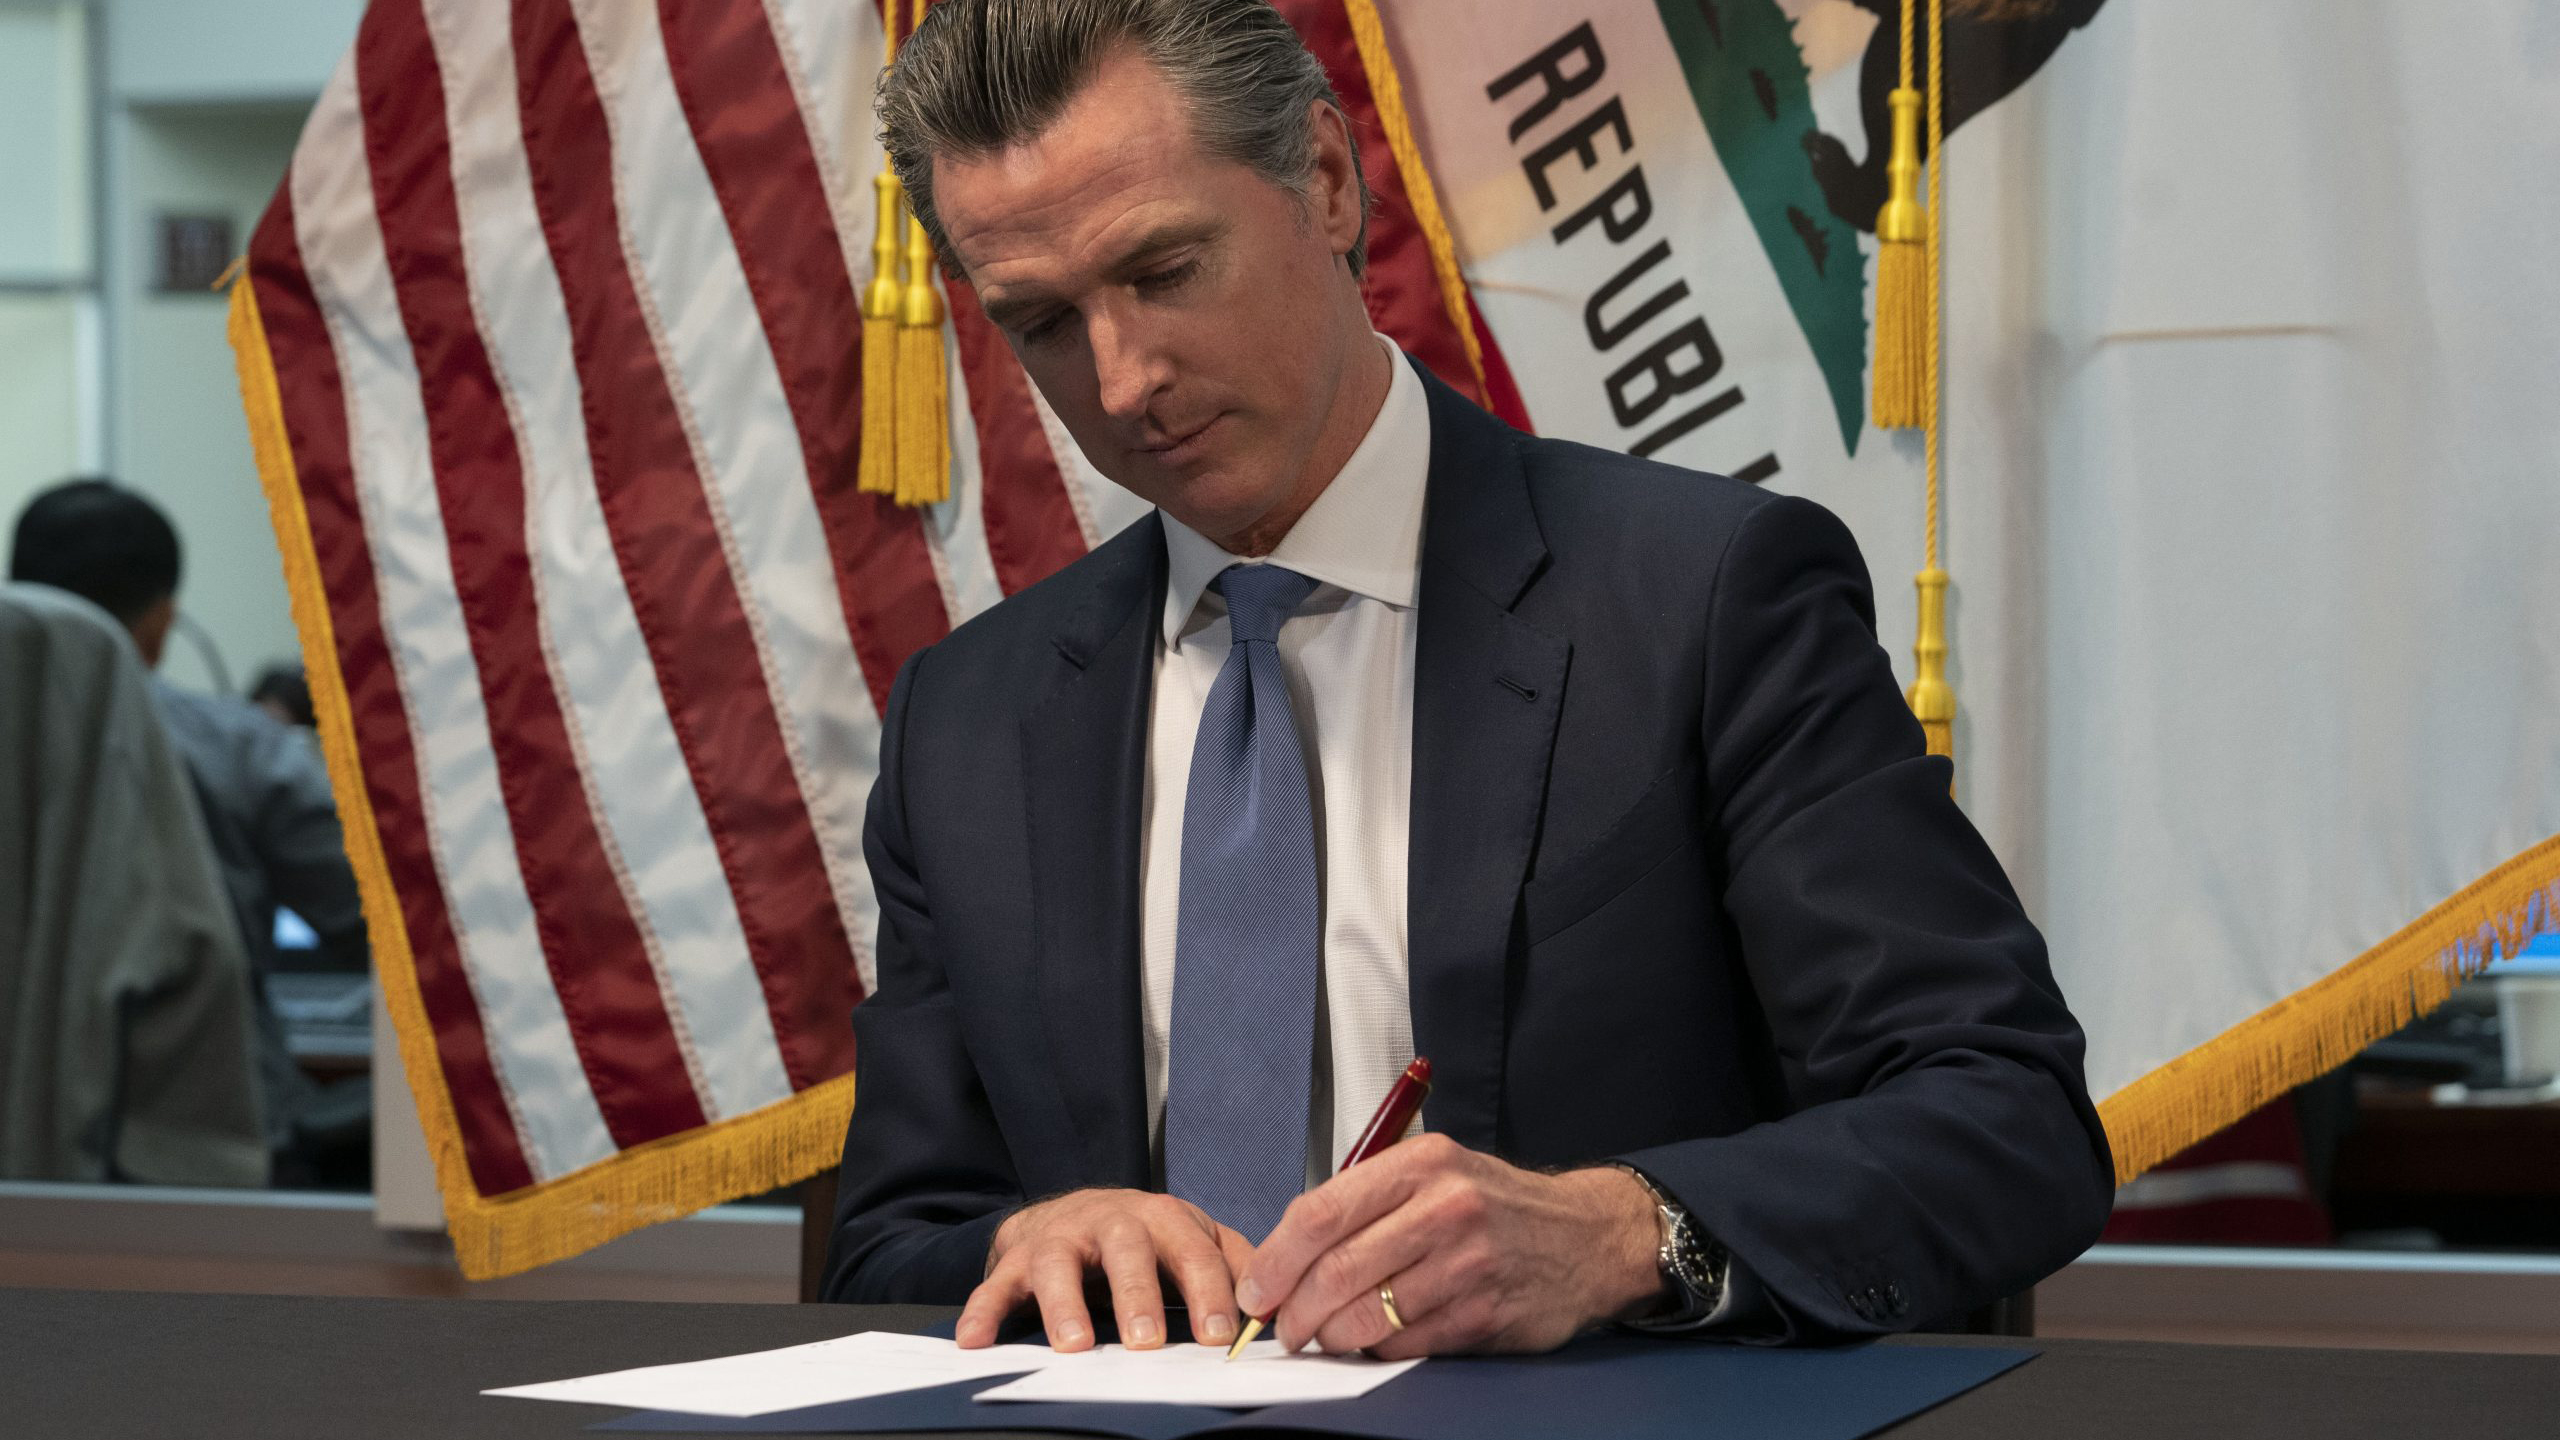 Governor Newsom Takes Executive Action To Establish A Statewide Moratorium On Evictions